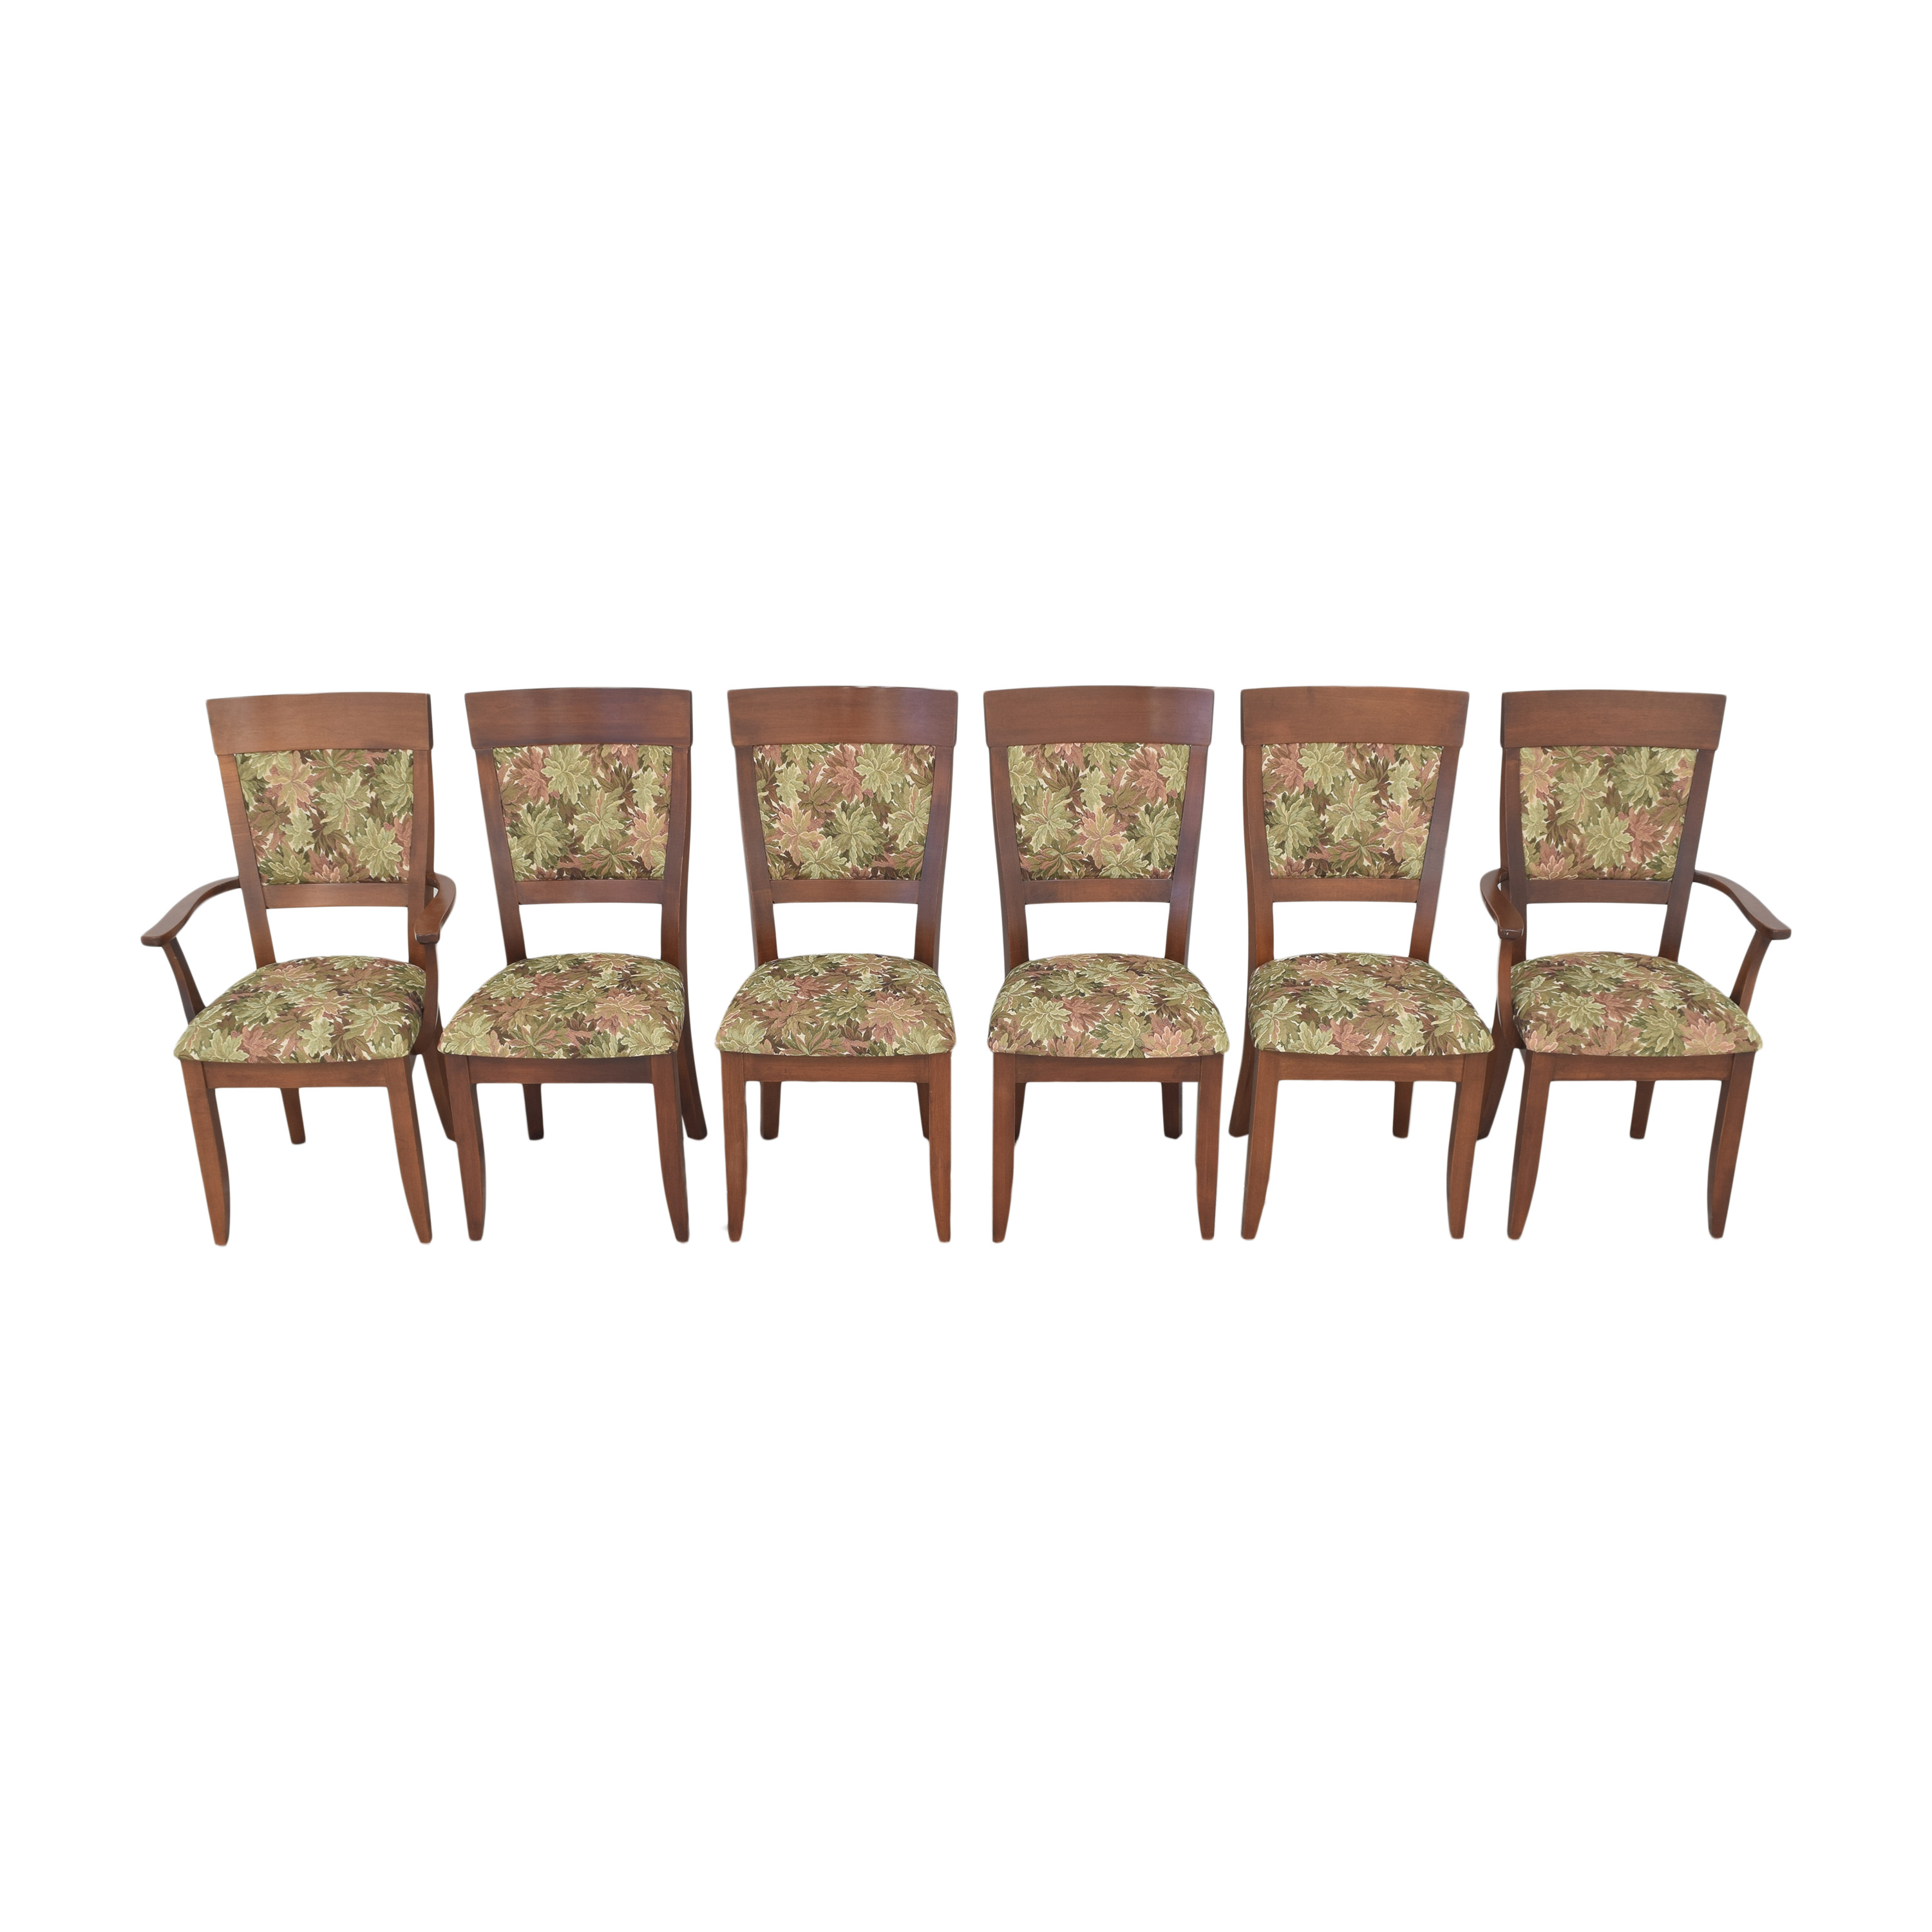 Saloom Saloom Model 57 Dining Chairs for sale